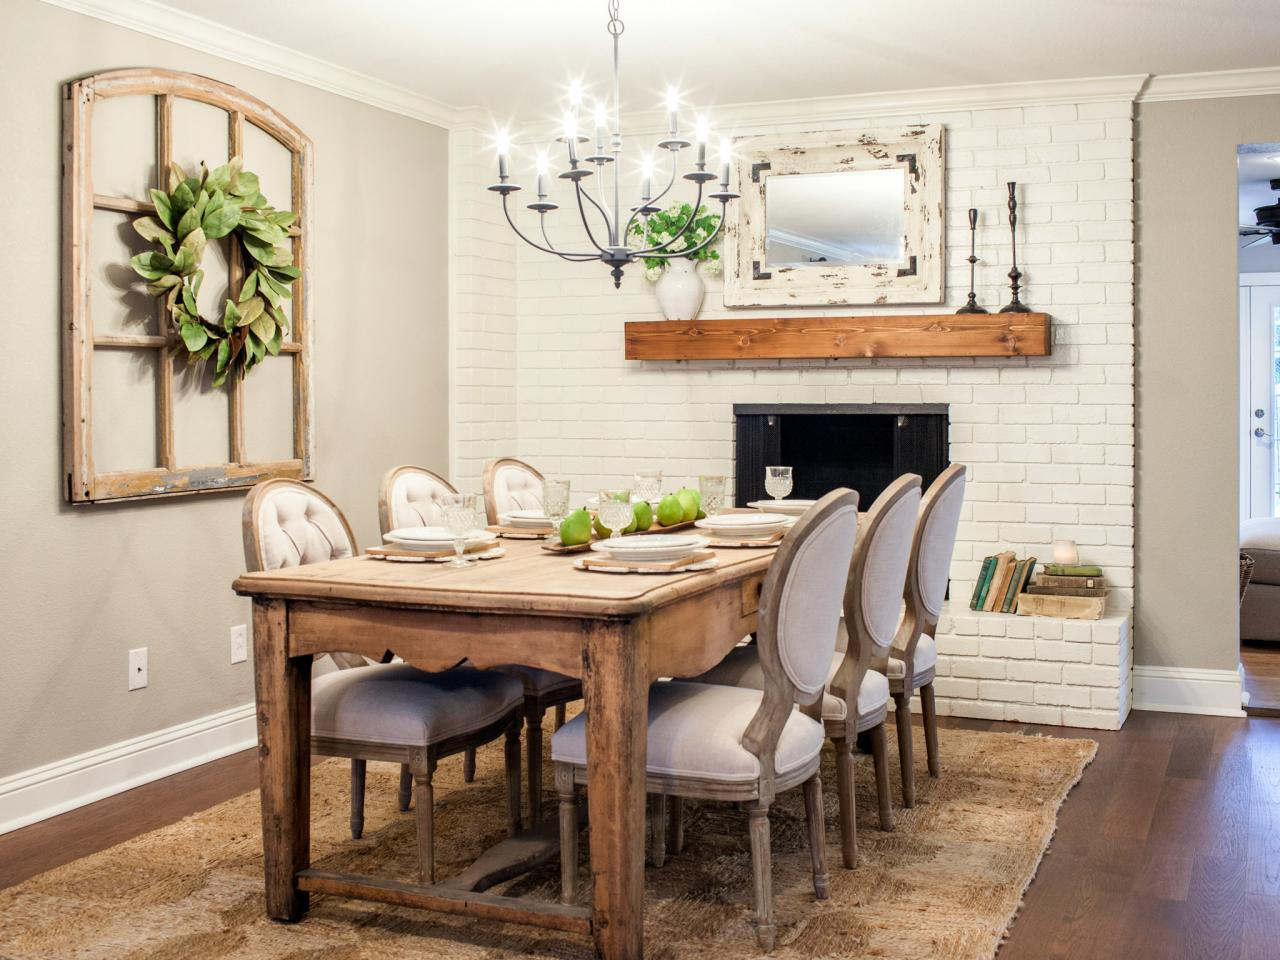 Fixer upper archives the honeycomb home for Dining room wall decor ideas